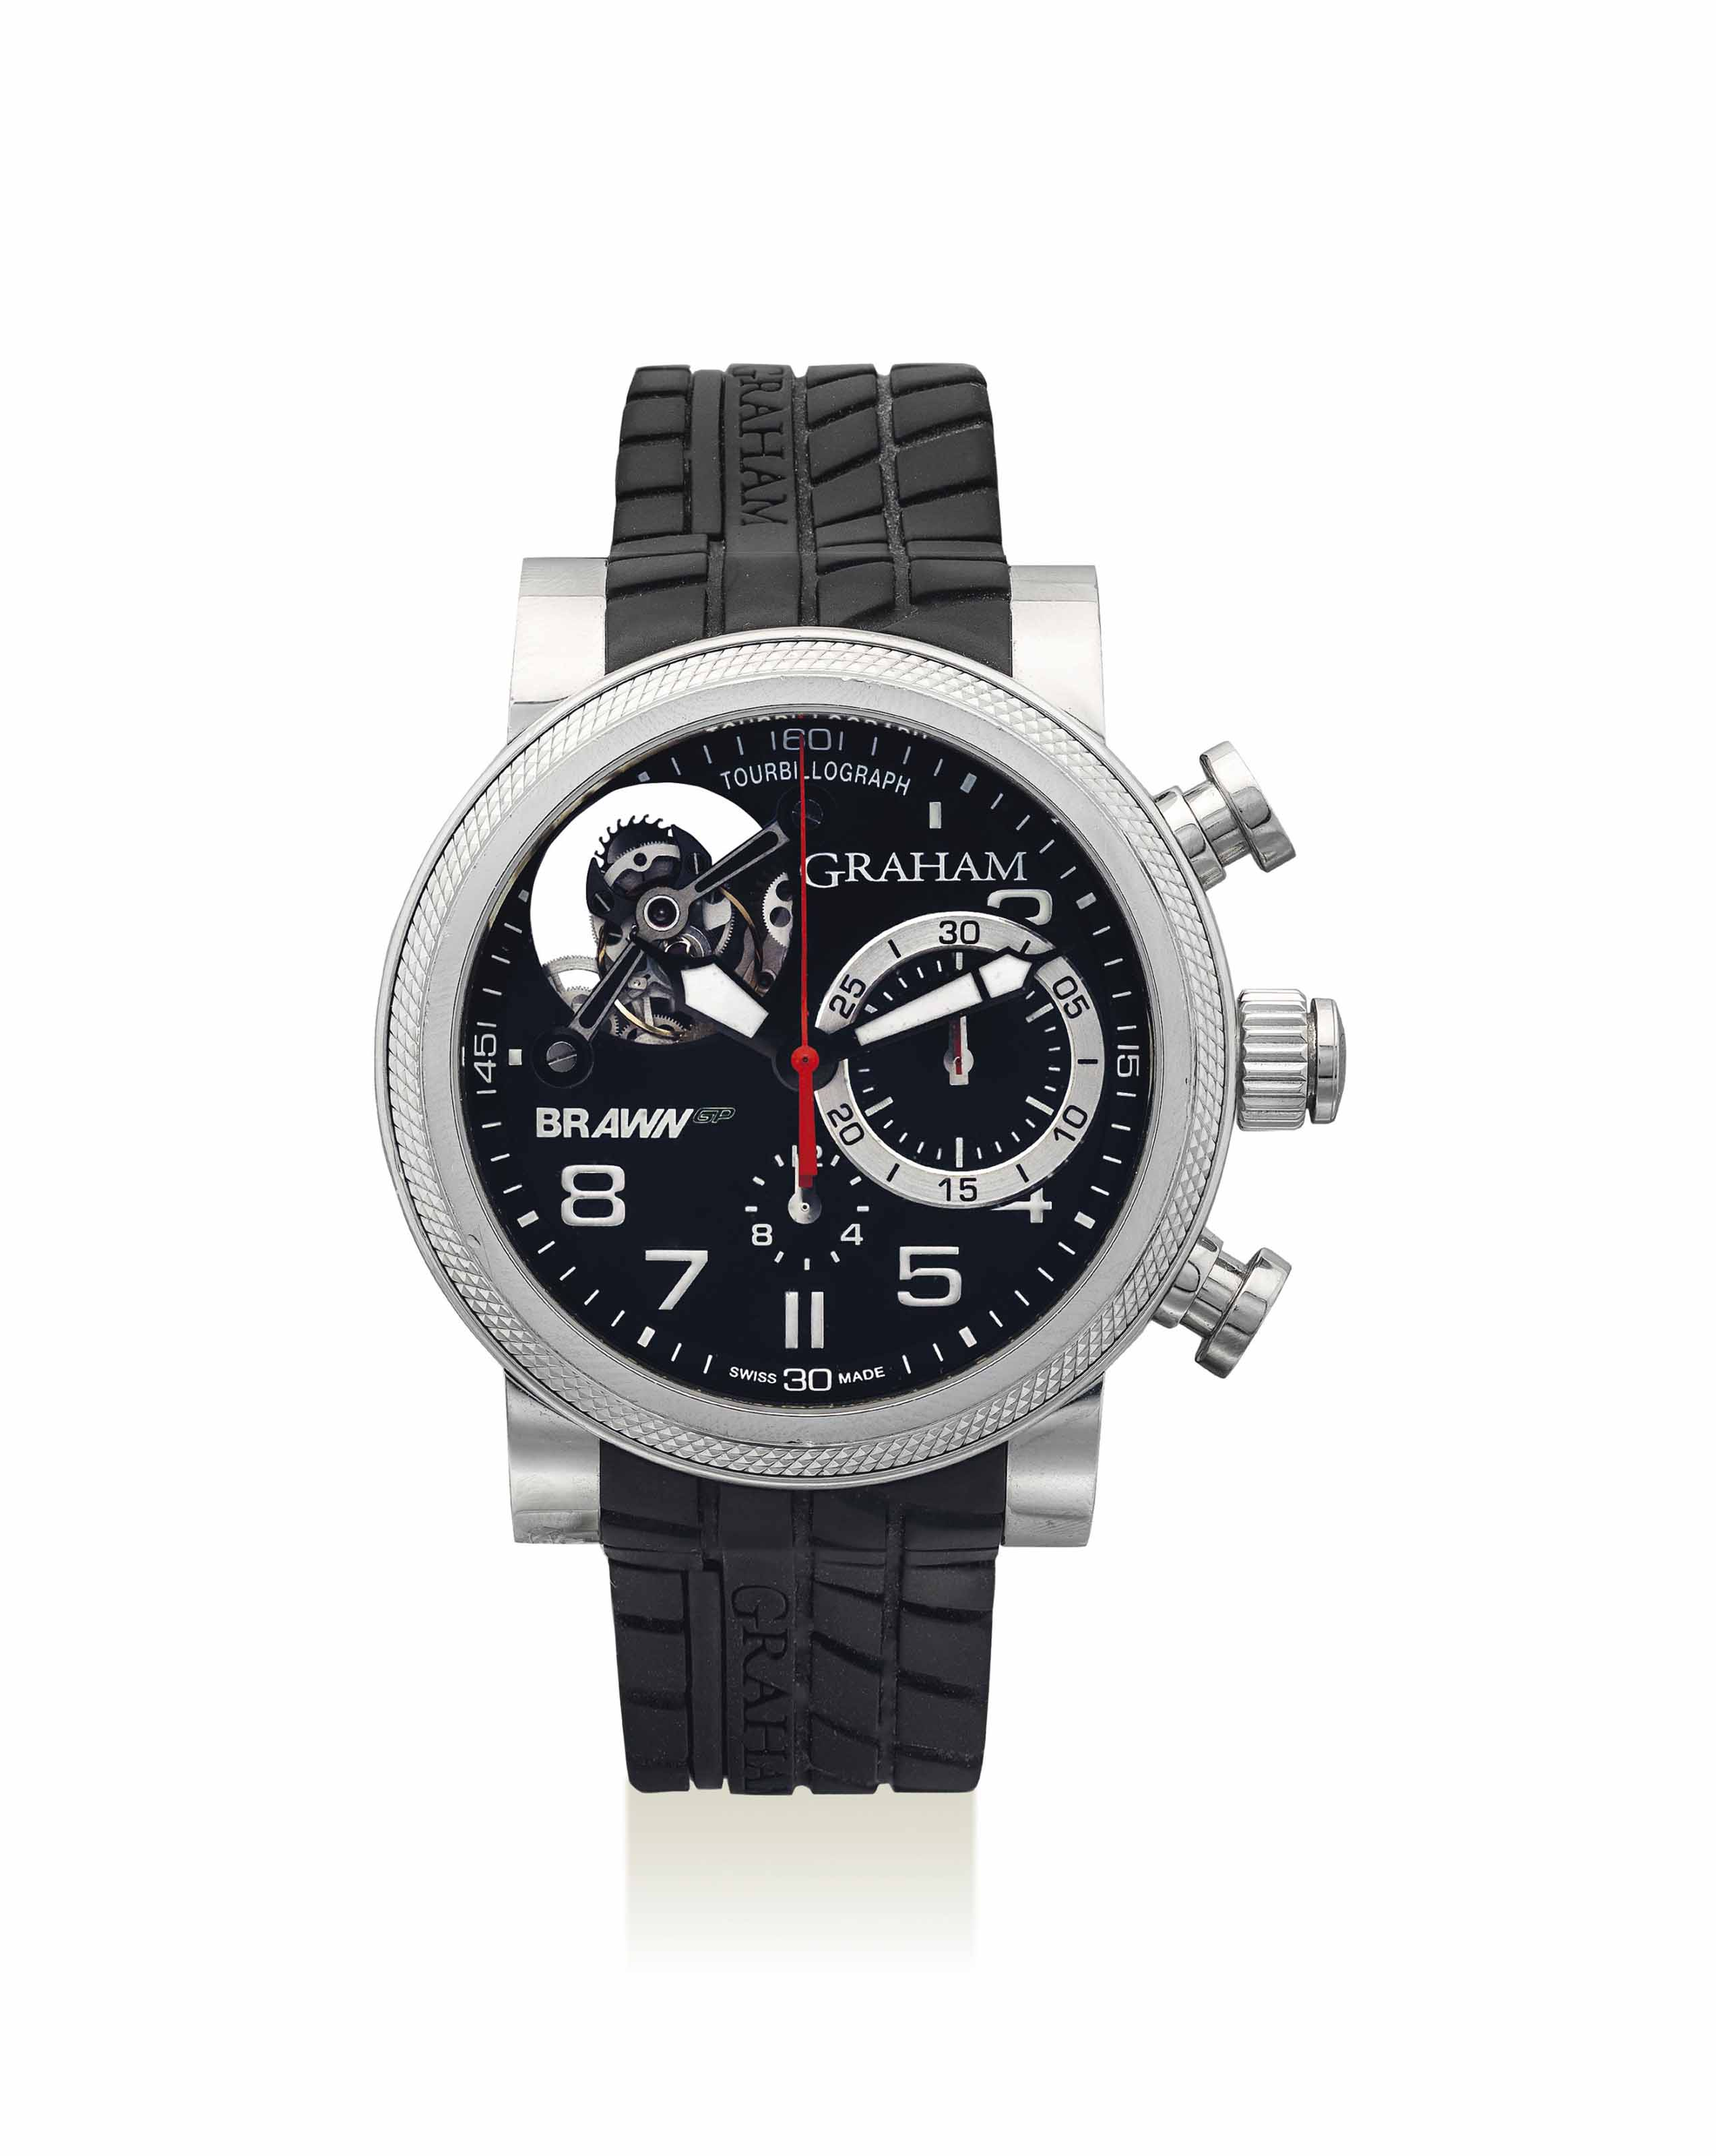 GRAHAM. A LARGE STAINLESS STEEL LIMITED EDITION AUTOMATIC FLYING TOURBILLON CHRONOGRAPH WRISTWATCH